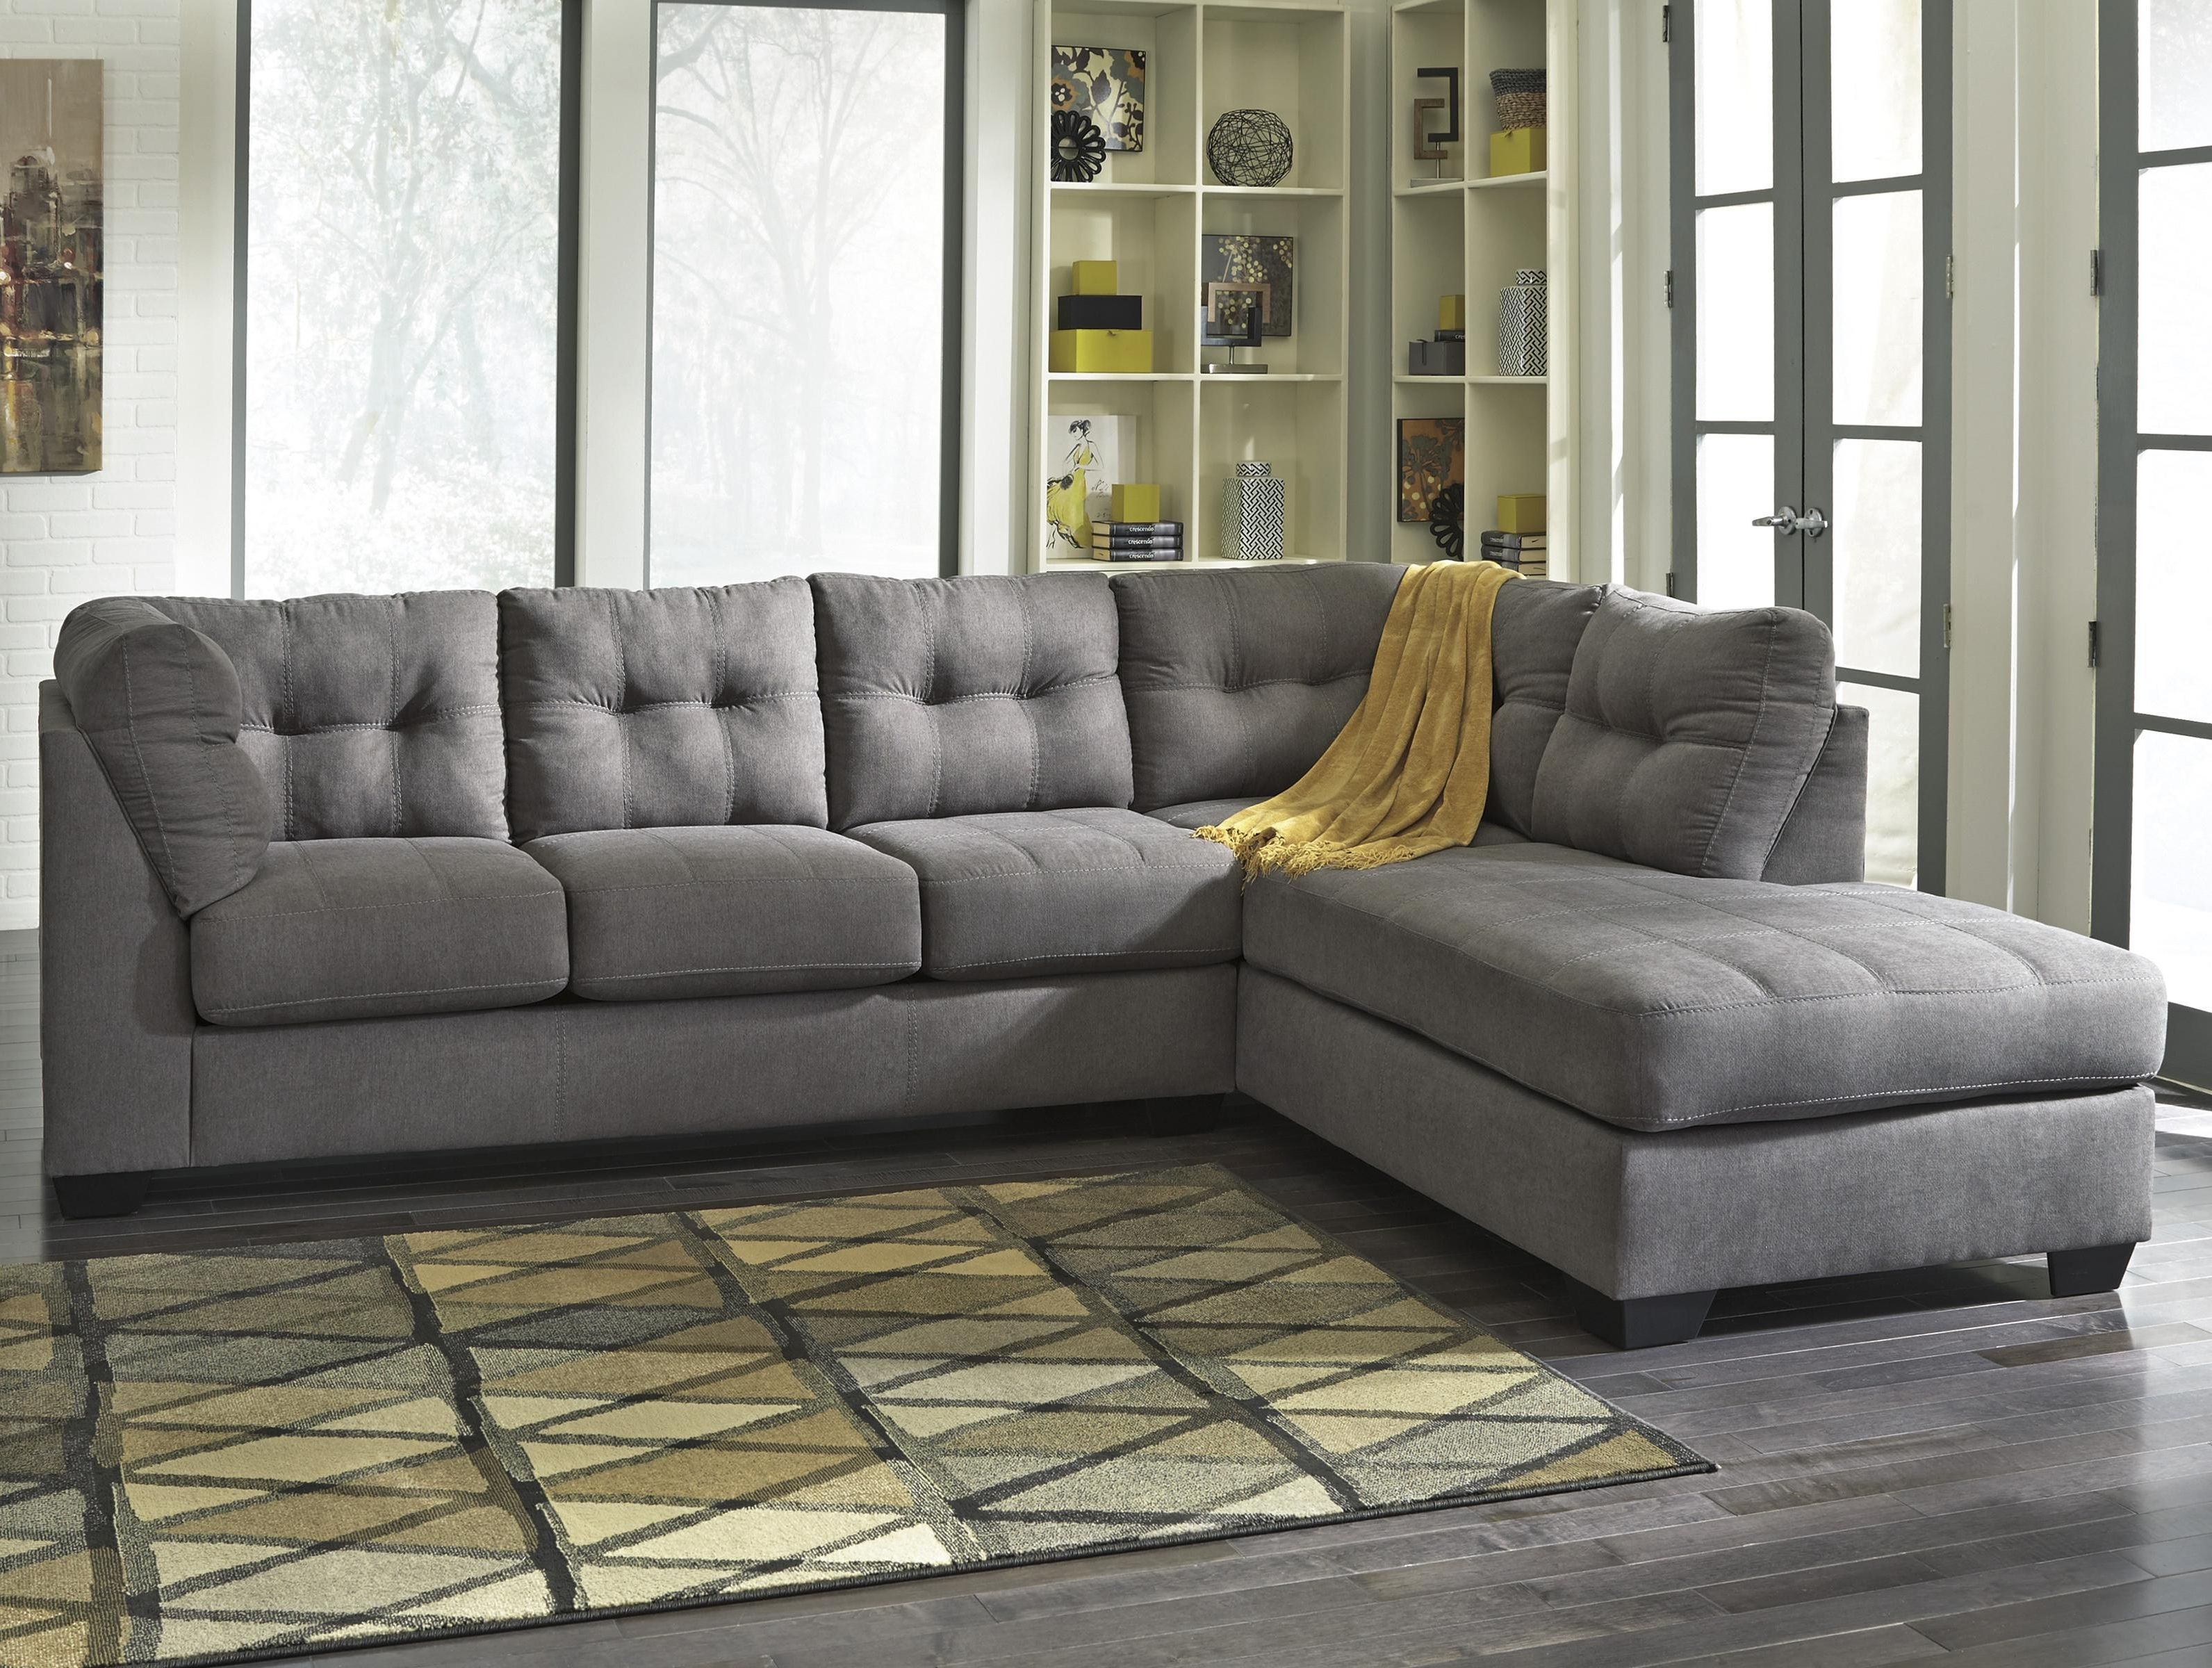 Most Recently Released Sectional Sofas Throughout Benchcraft Maier – Charcoal 2 Piece Sectional With Left Chaise (View 12 of 20)